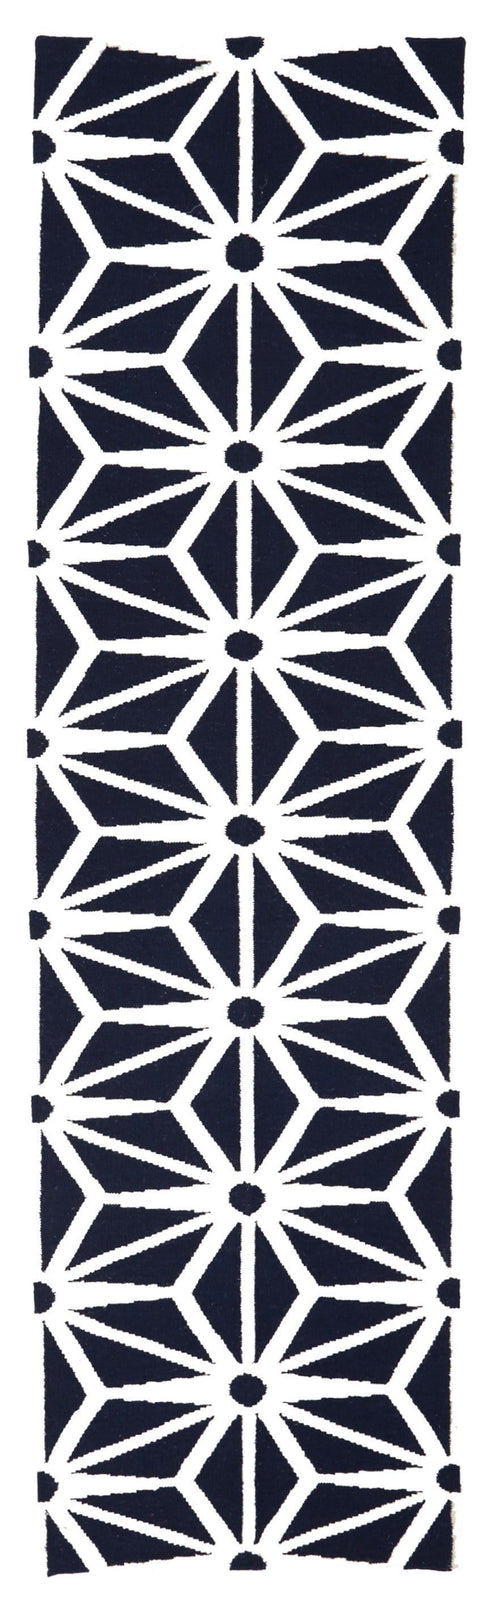 Kirkenes Navy & White Starburst Wool Runner Rug